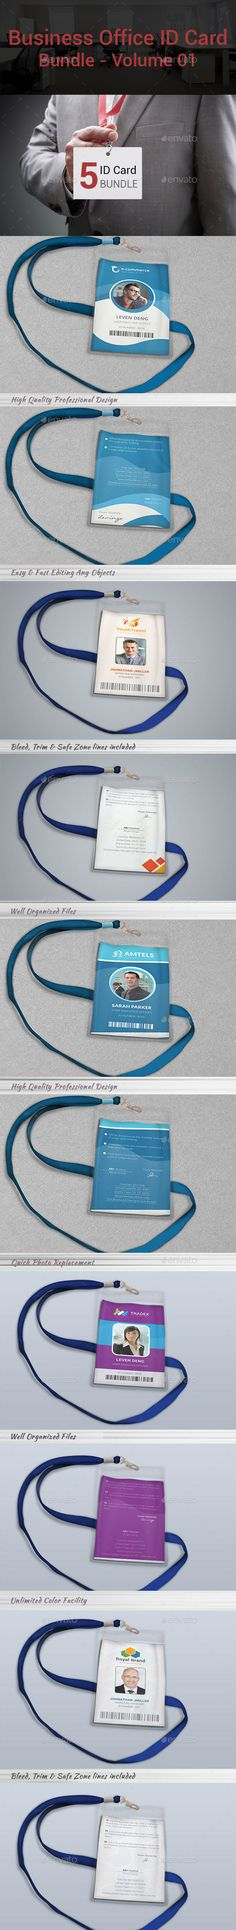 Business Office ID Card Bundle | Volume 01 — Vector EPS #card #office badge • Available here → https://graphicriver.net/item/business-office-id-card-bundle-volume-01/13296468?ref=pxcr